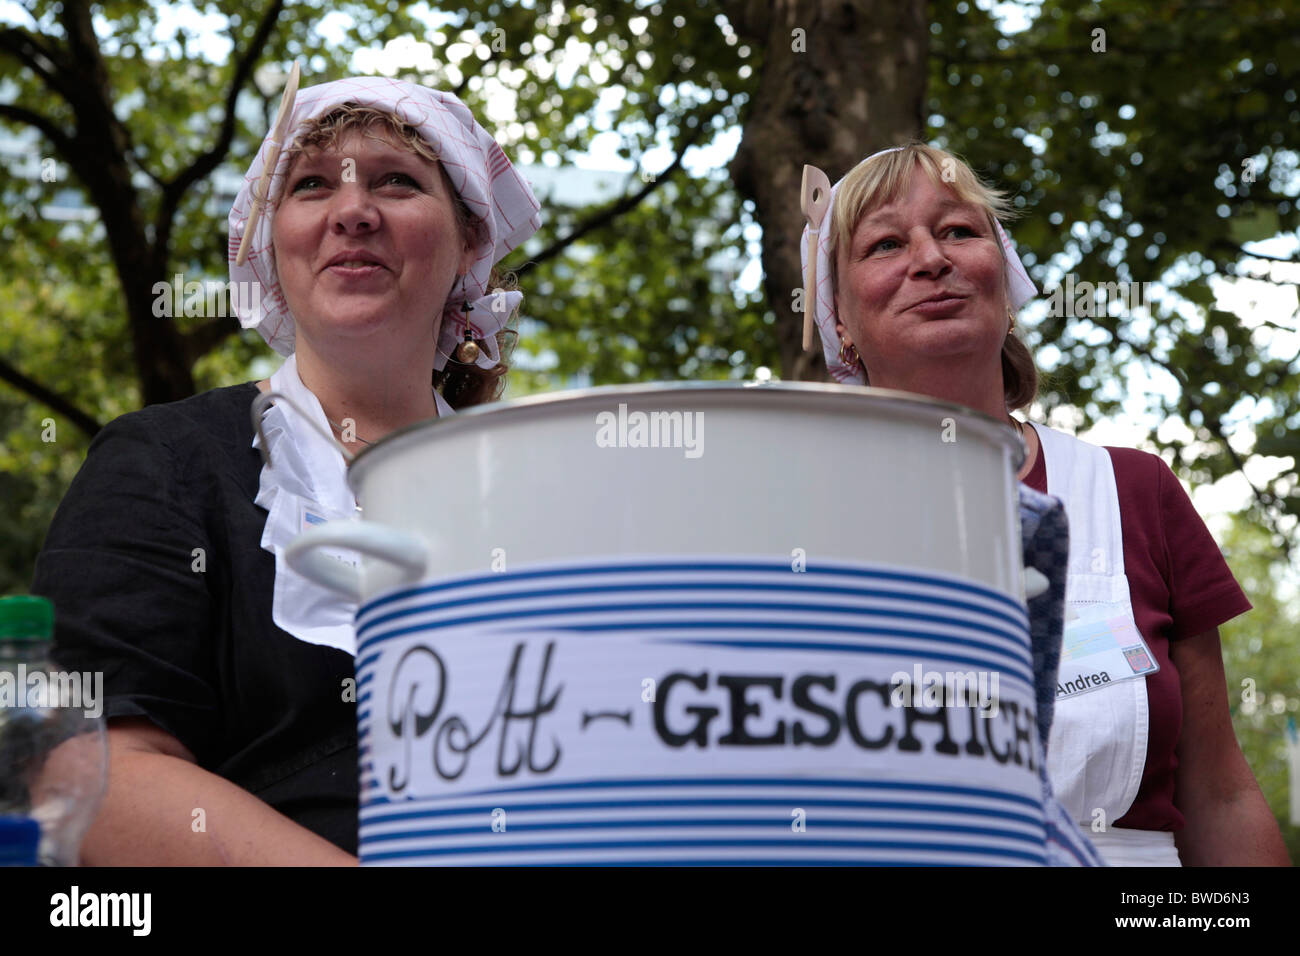 woman cooking on the german highway A40 in dortmund, ruhr area - Stilleben event in Summer 2010 - Stock Image